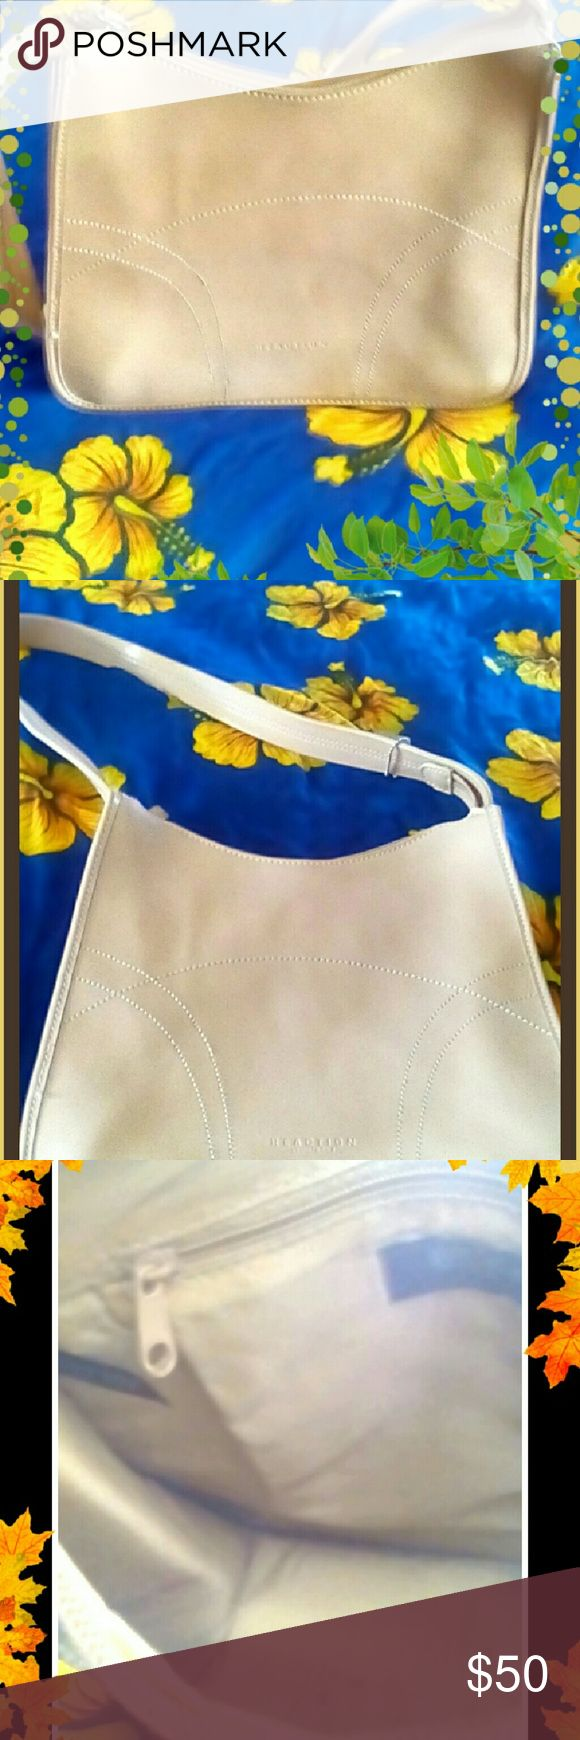 🌞Michael  Cole Reaction over the shoulder purse🌞 Michael Cole  Reaction Patent leather over the shoulder purse. The purse is in perfect condition the only thing as you can see from the picture posted the inside bottom of the purse has some stains from a makeup stick. Only noticeable if looking for it and could be removed if cleaned. Michael Cole  Bags Shoulder Bags